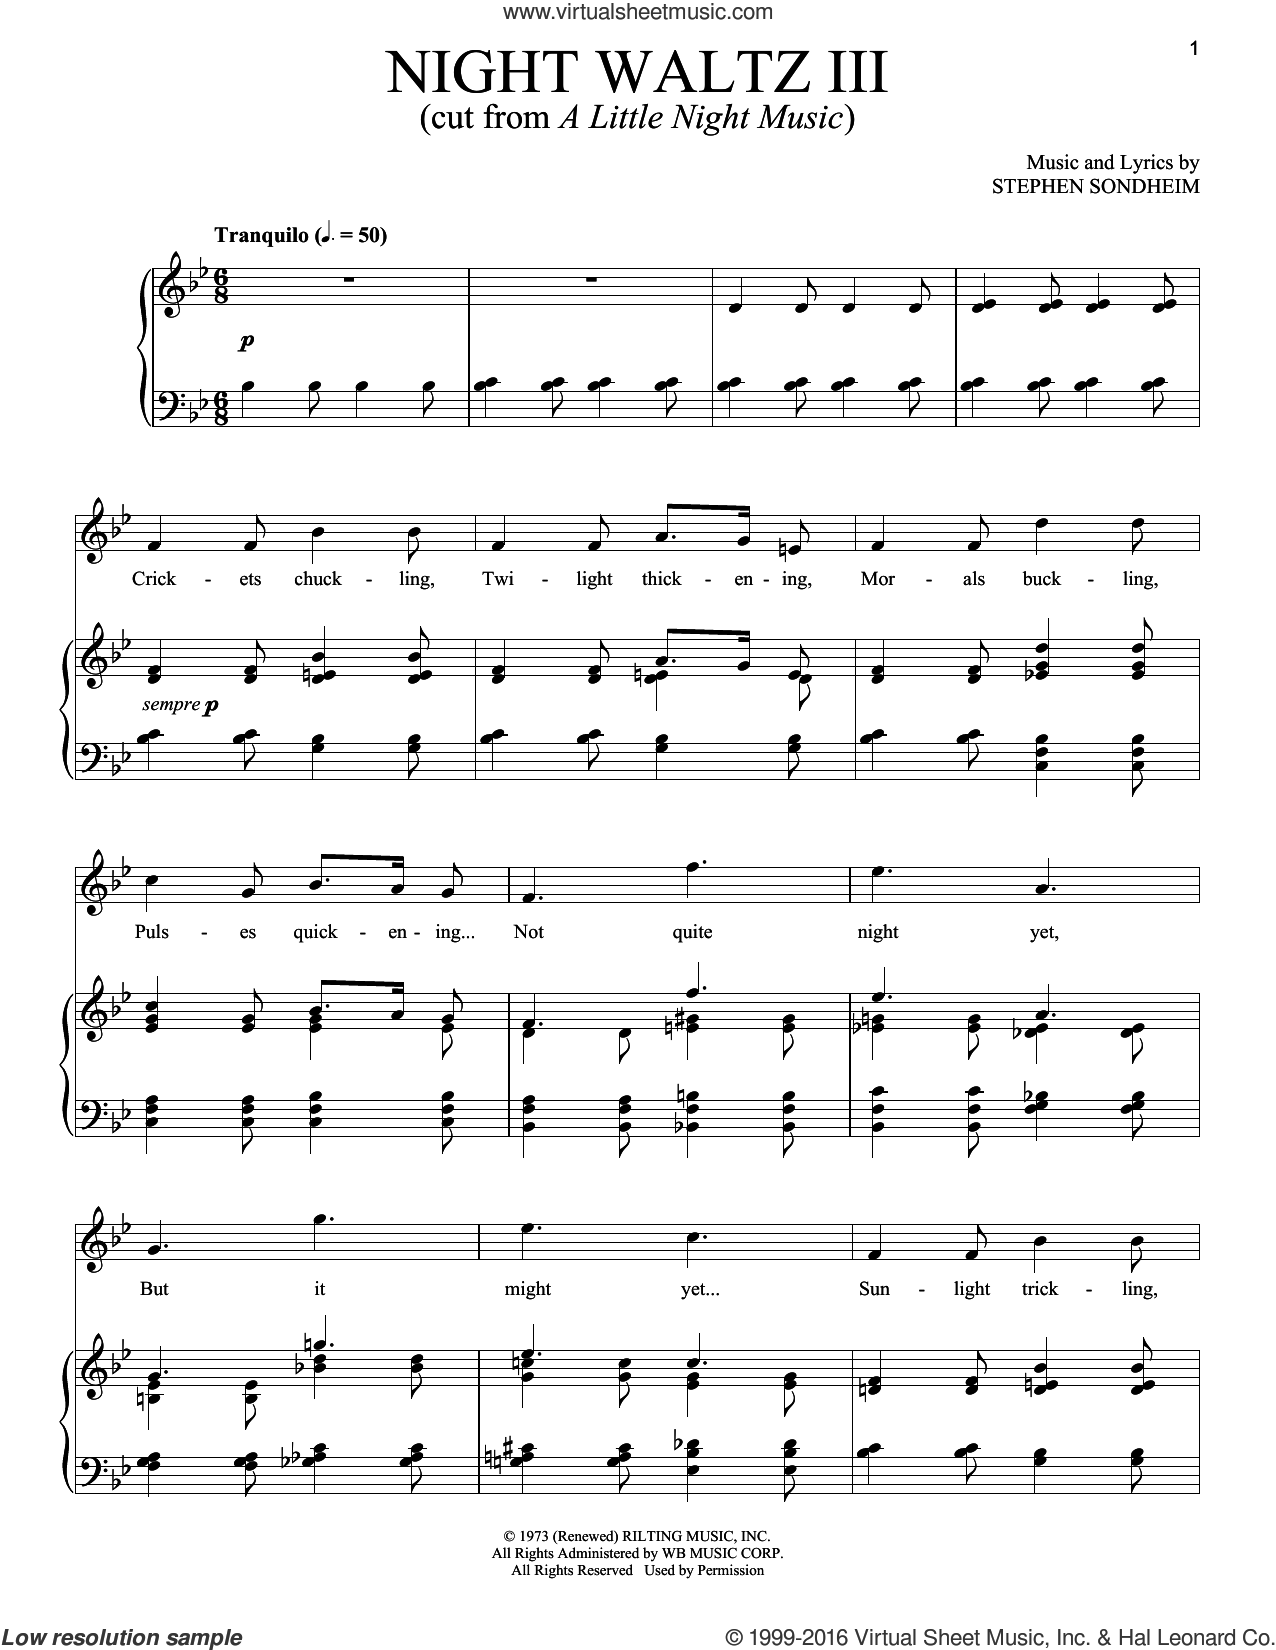 Night Waltz III sheet music for voice and piano by Stephen Sondheim, intermediate skill level